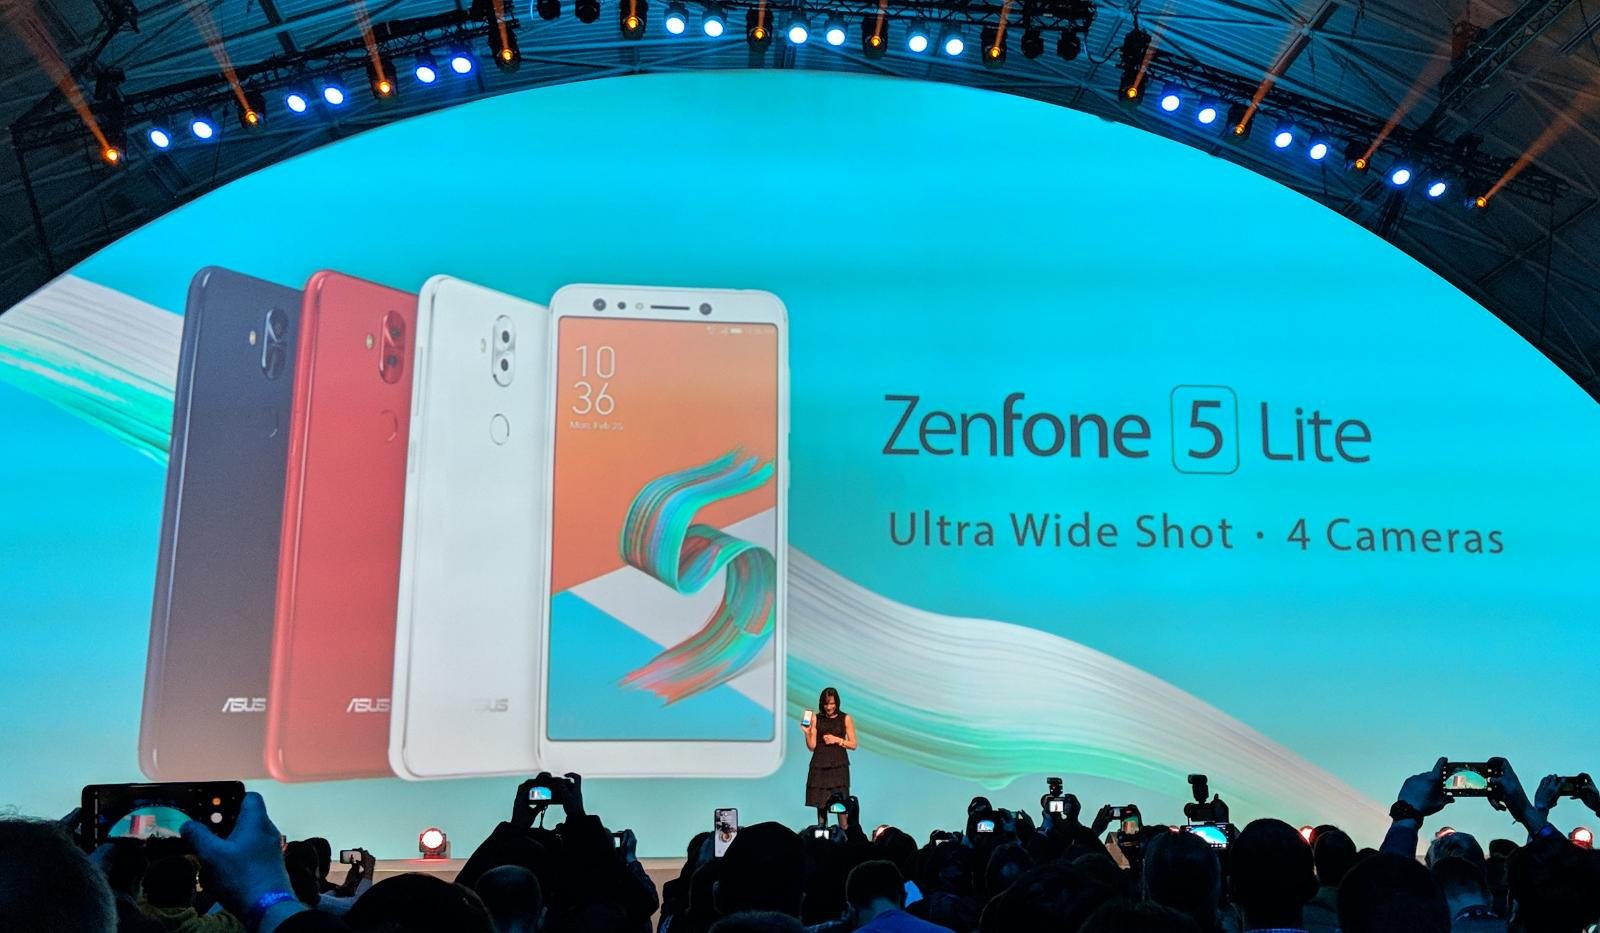 Asus Zenfone 5 Lite With Front And Back Dual Lens Camera